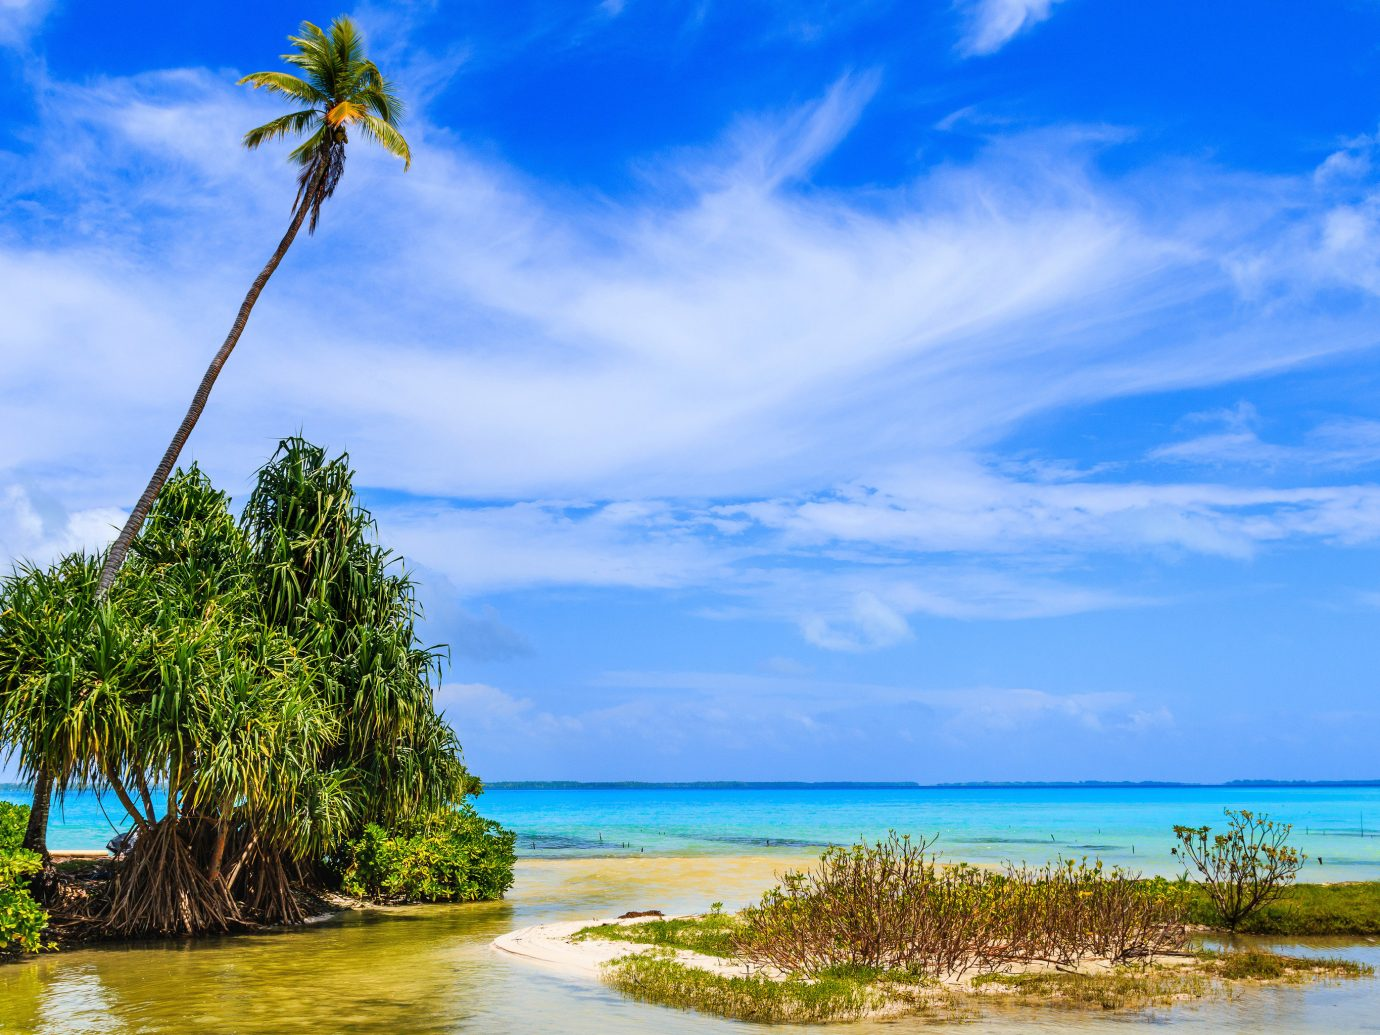 Islands Trip Ideas water sky outdoor tree tropics Nature Sea caribbean shore vegetation Ocean palm tree arecales daytime Coast coastal and oceanic landforms cloud horizon islet Island Lagoon Beach vacation calm tourism bay promontory computer wallpaper landscape plant Lake swimming sandy